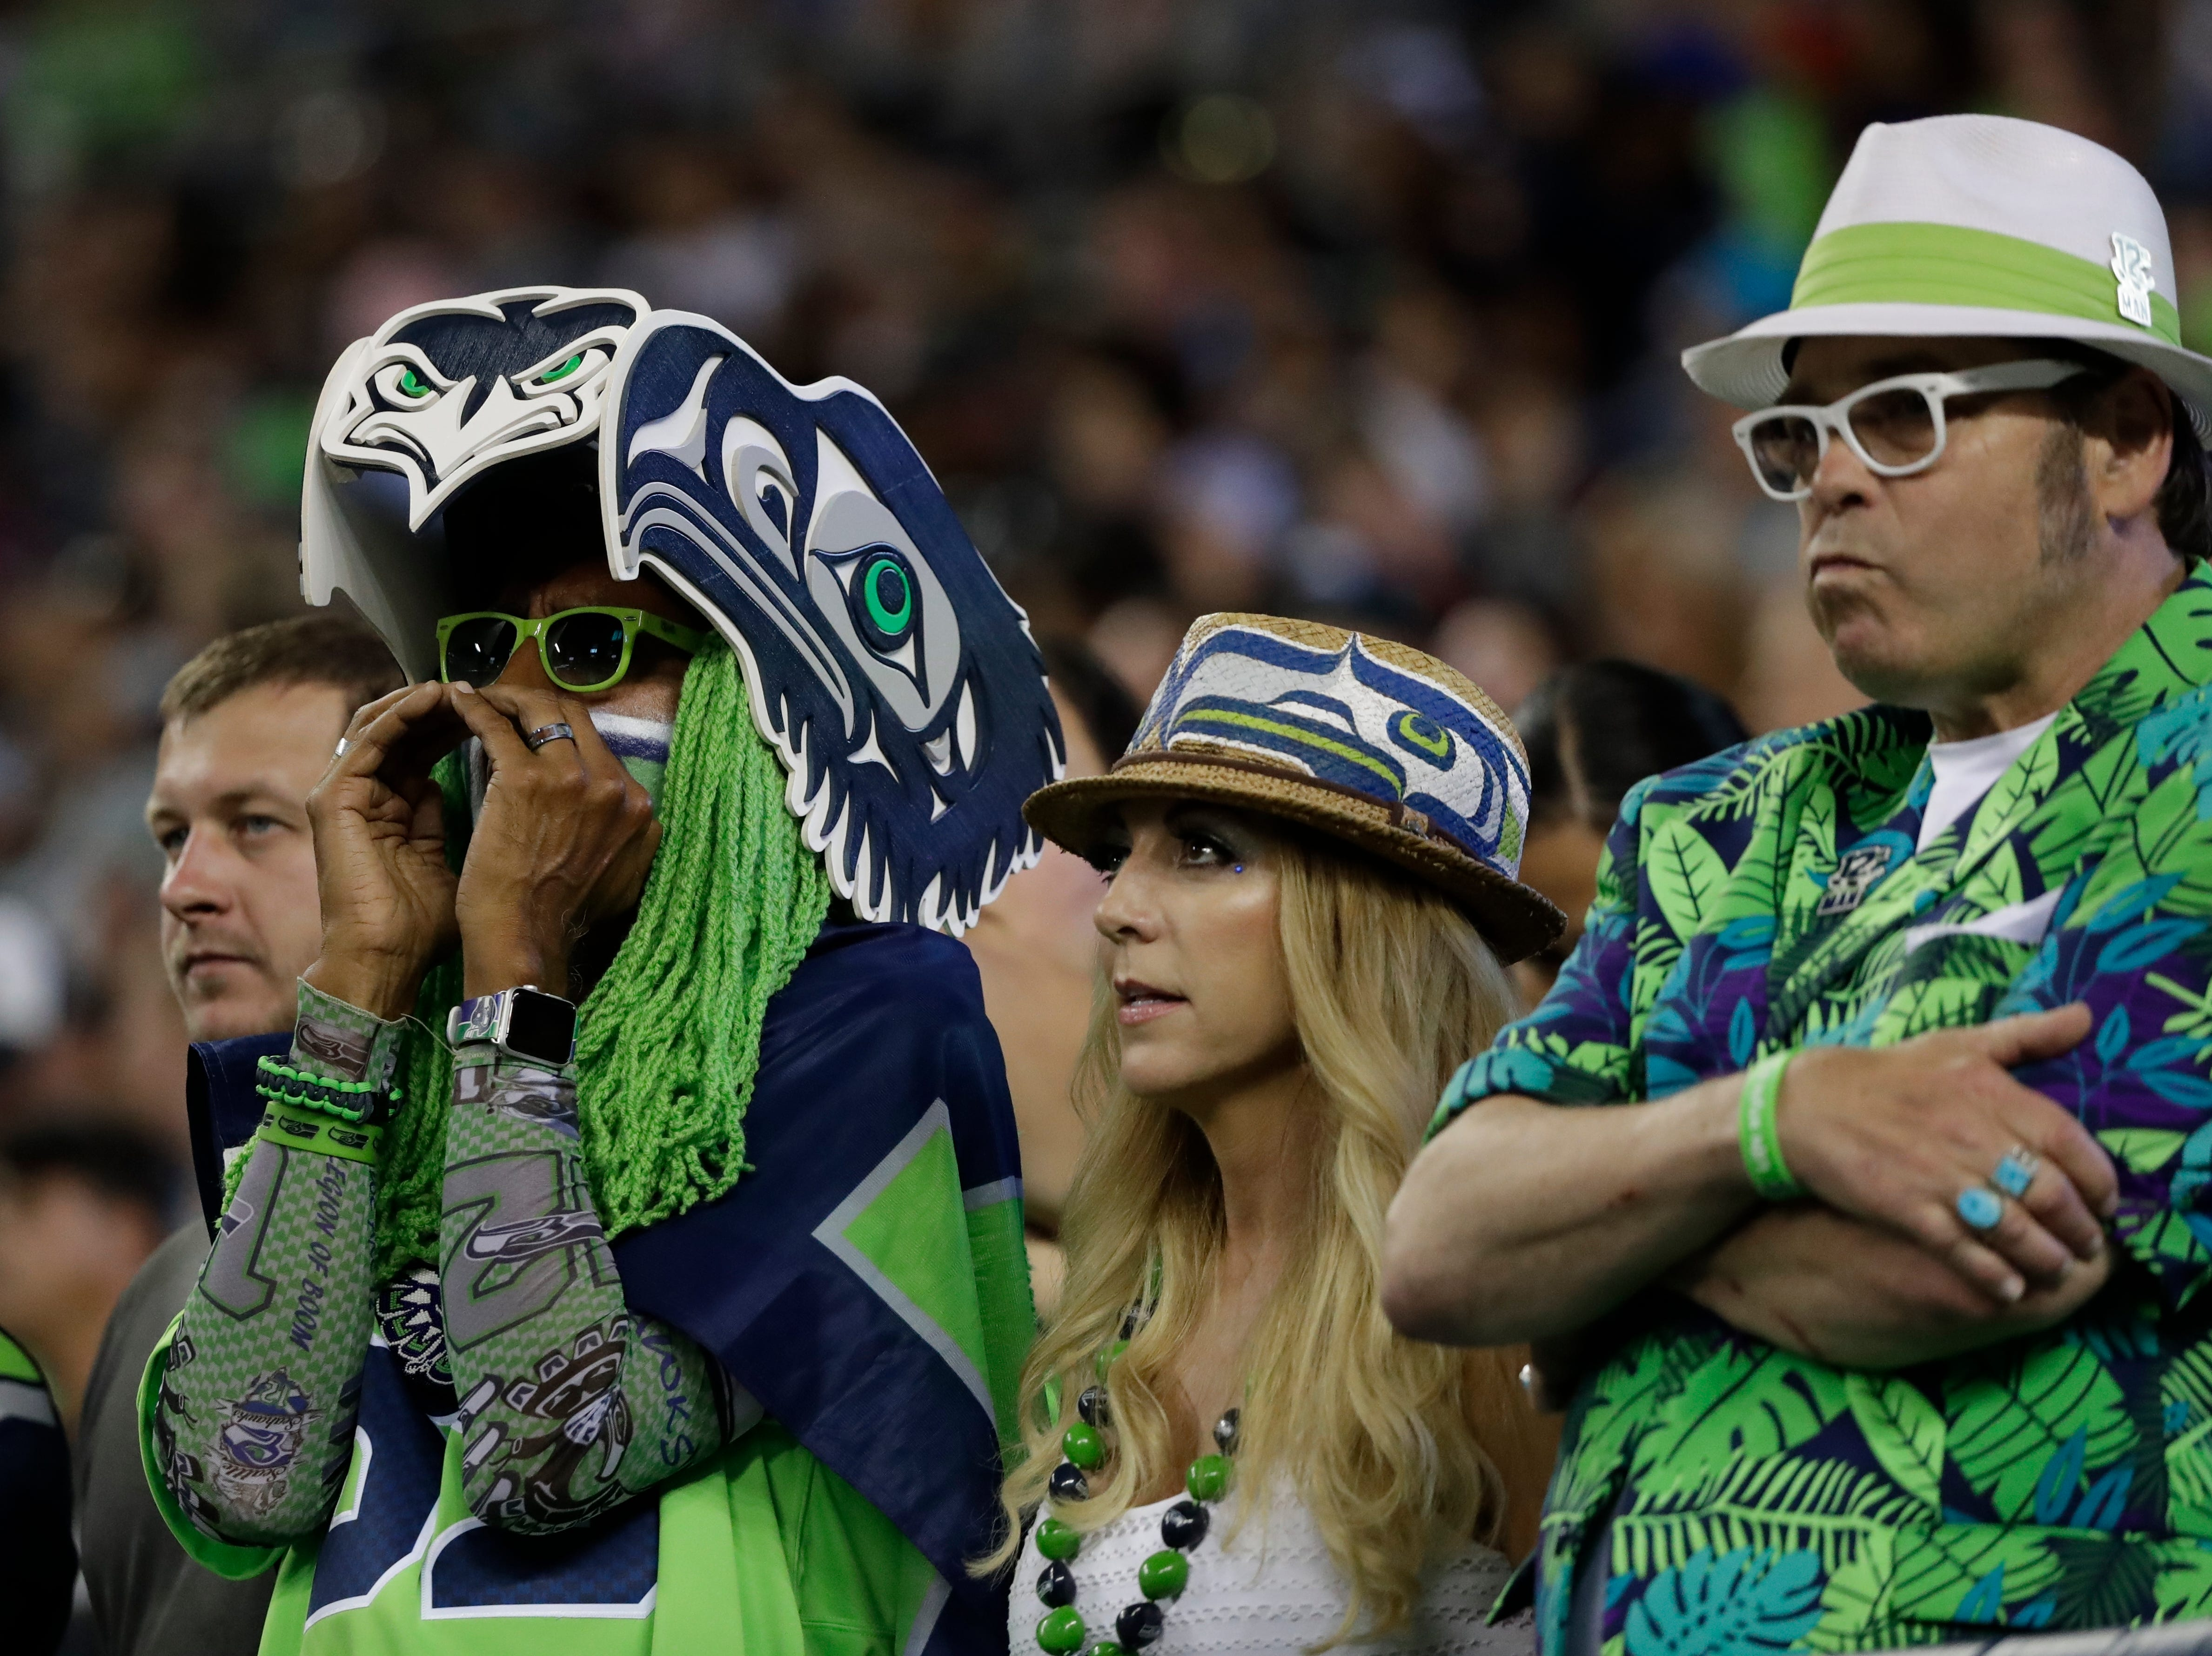 Seattle Seahawks fans watch during the second half of an NFL football preseason game against the Indianapolis Colts, Thursday, Aug. 9, 2018, in Seattle. (AP Photo/Elaine Thompson)